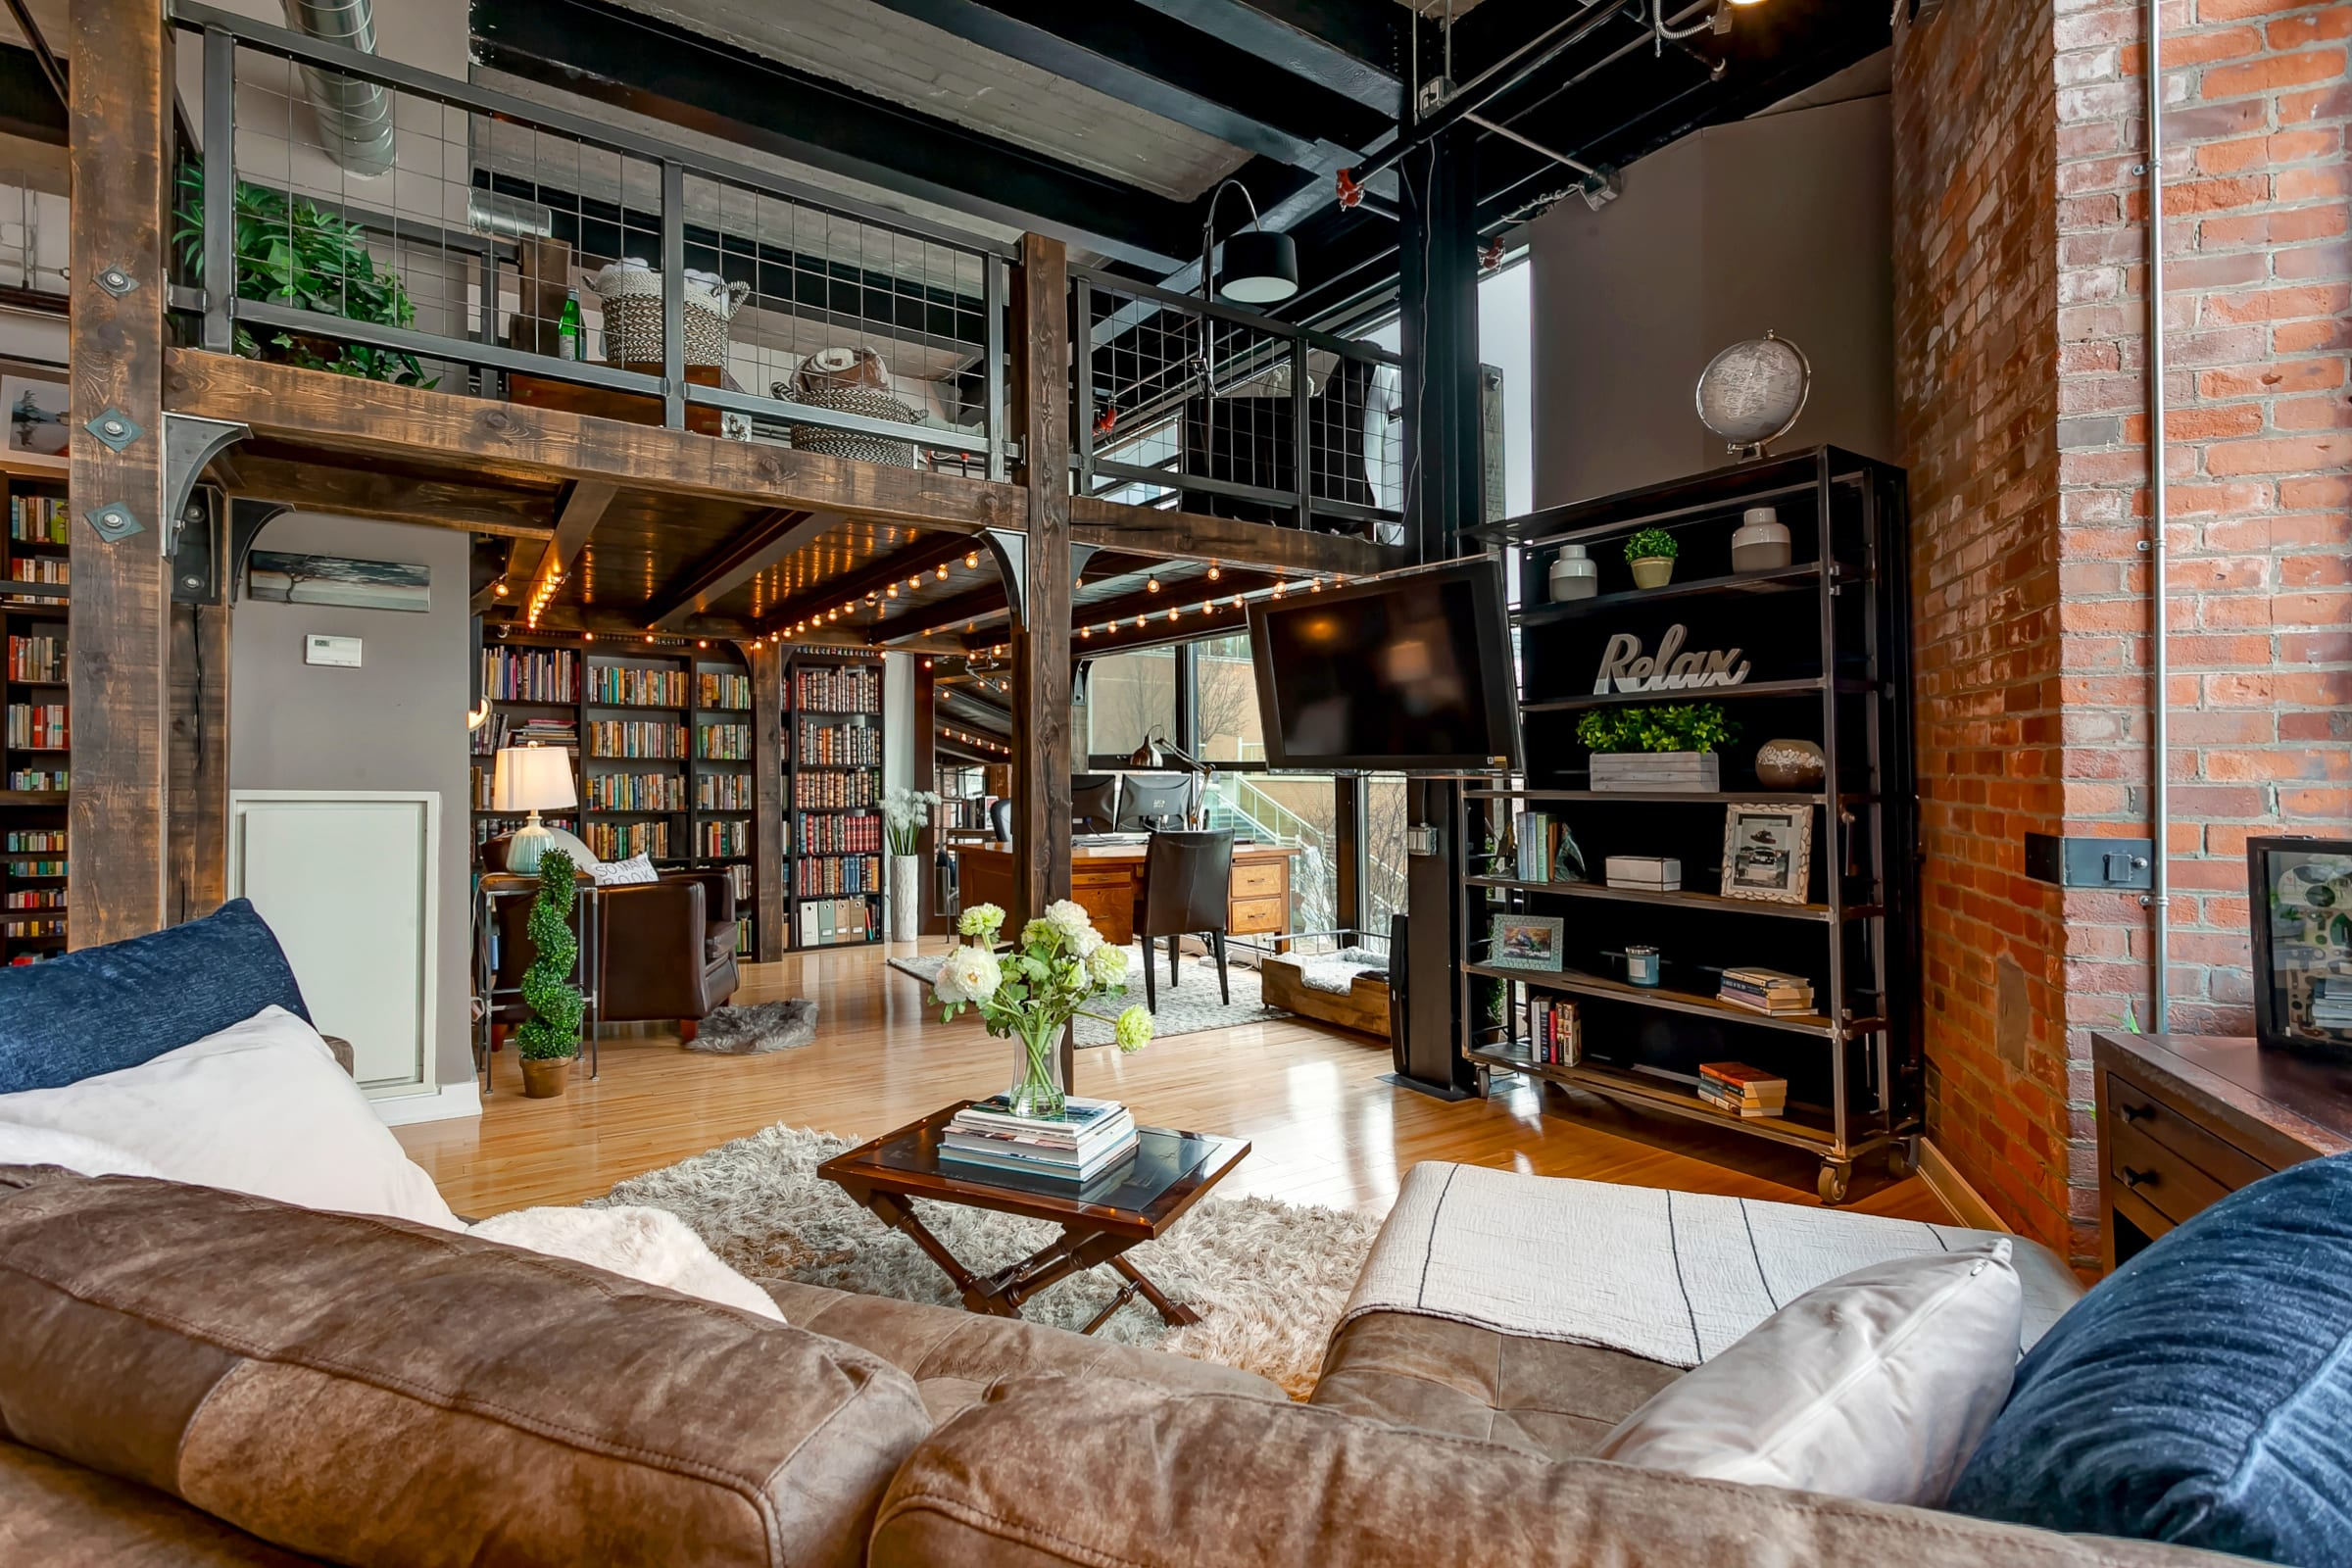 1 8 Million For A Brick And Steel Loft In Liberty Village